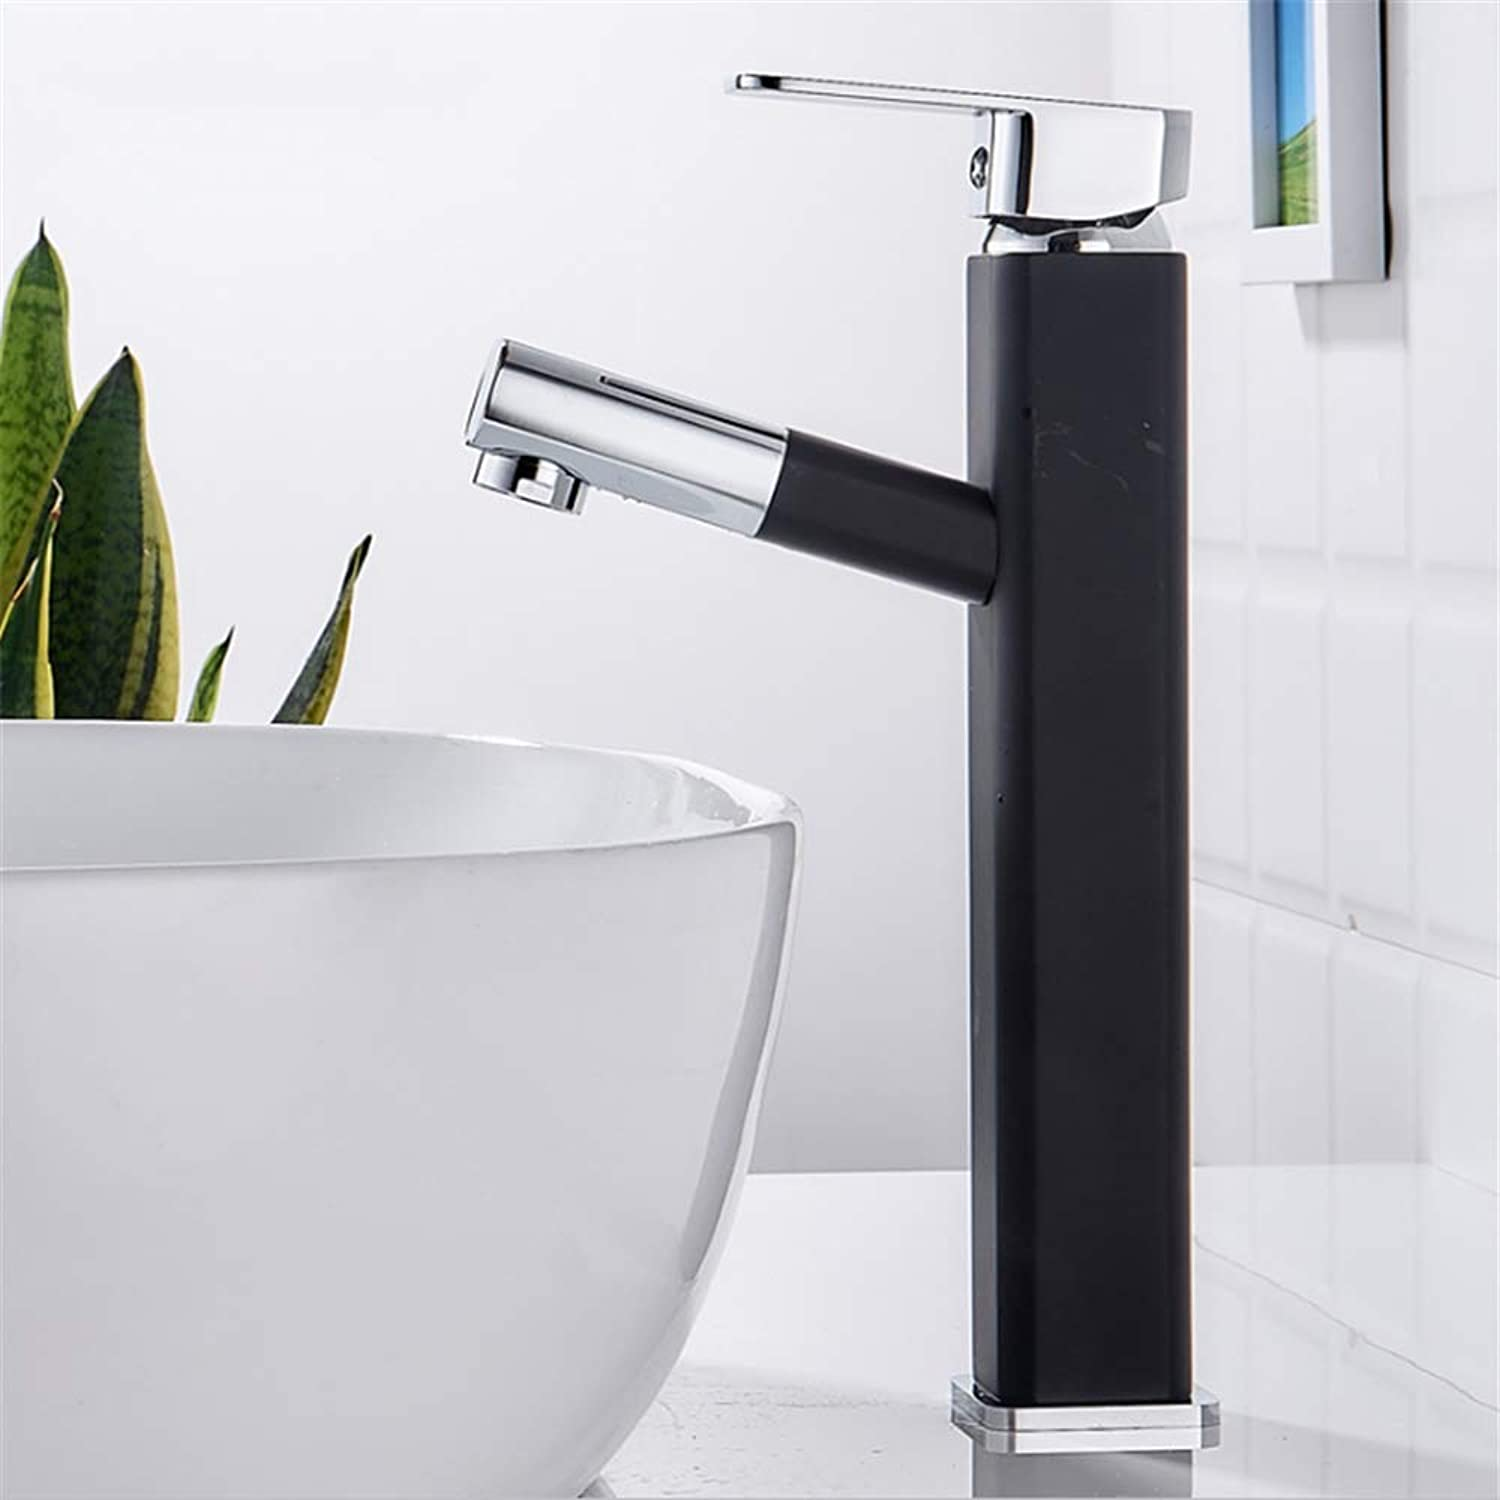 Pull-Out Basin Faucet, Available in a Variety of Styles Brass Faucet, Black and Silver